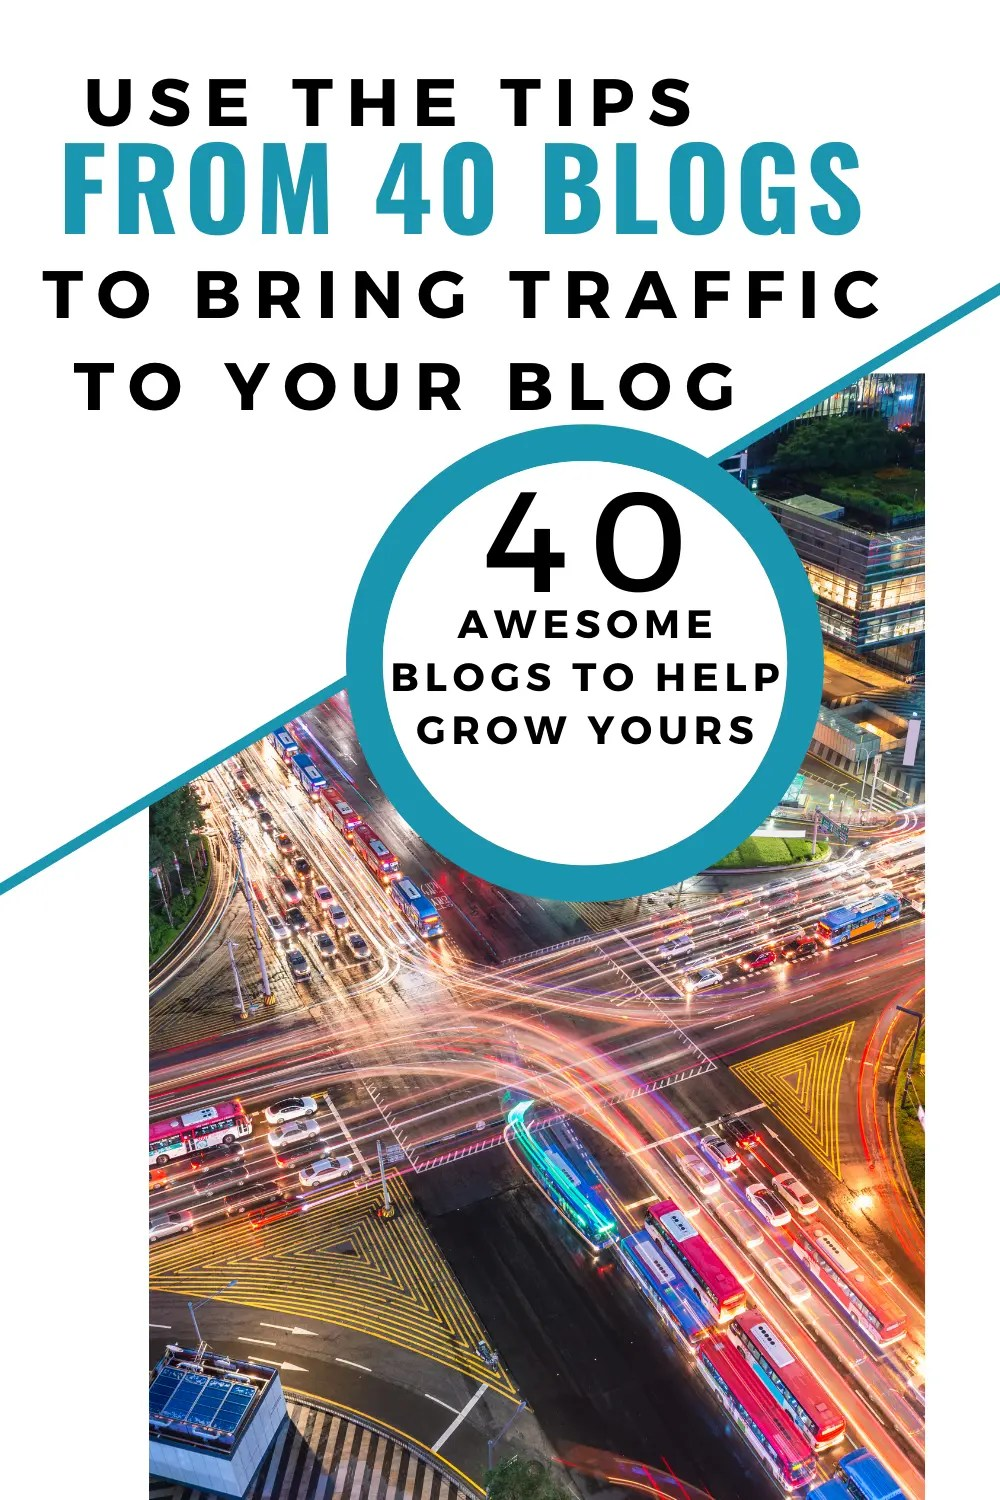 40 awesome blogs to help grow your blog